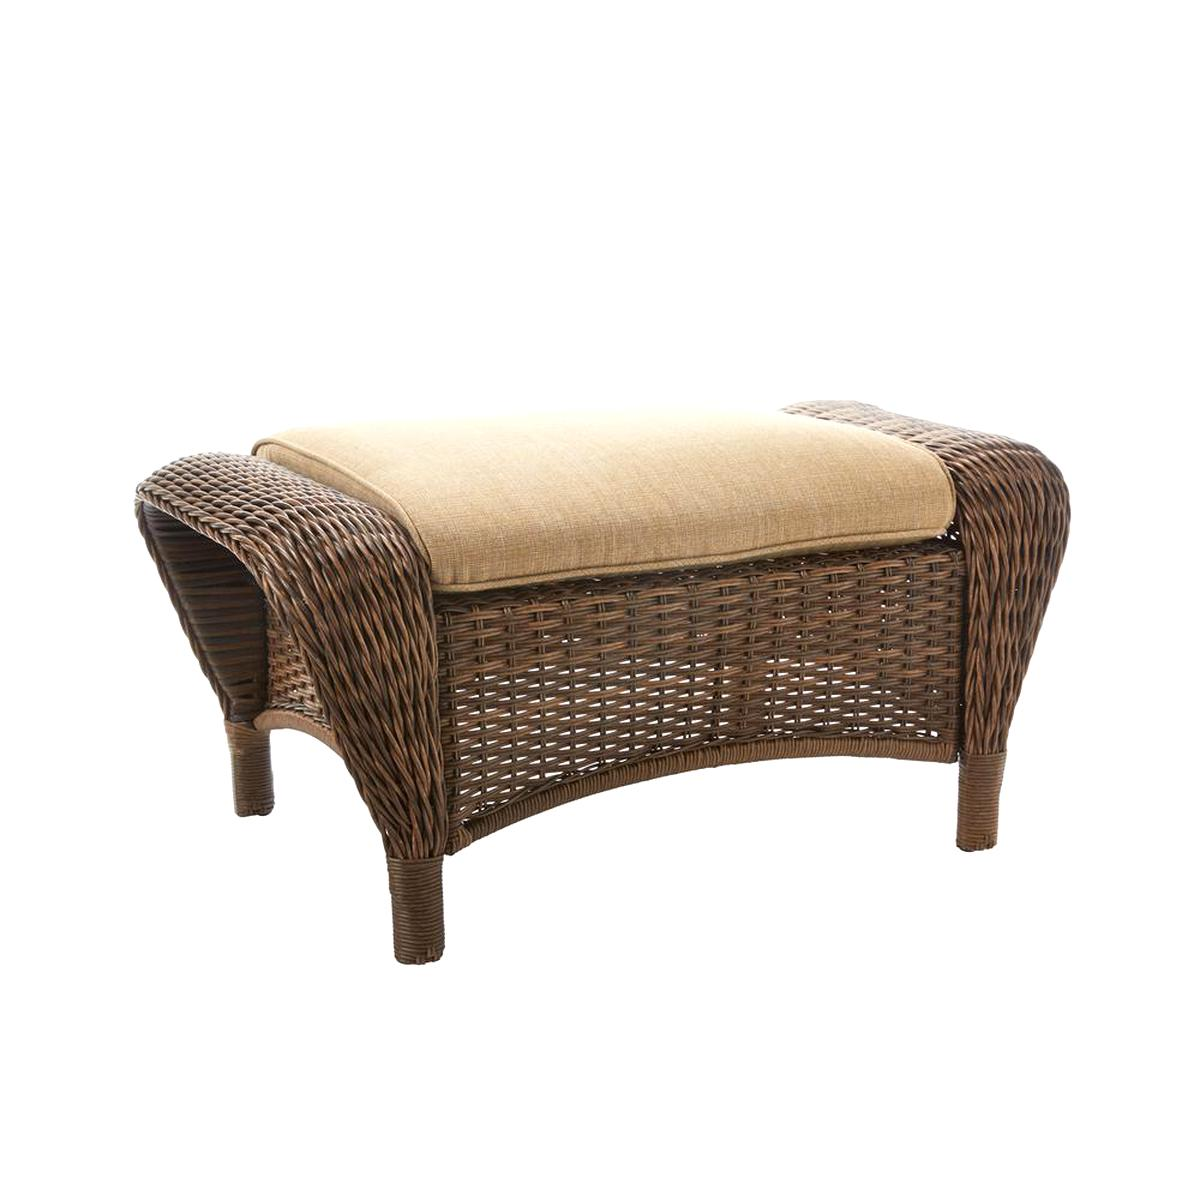 Outstanding Wicker Ottoman For Sale Only 3 Left At 65 Ncnpc Chair Design For Home Ncnpcorg